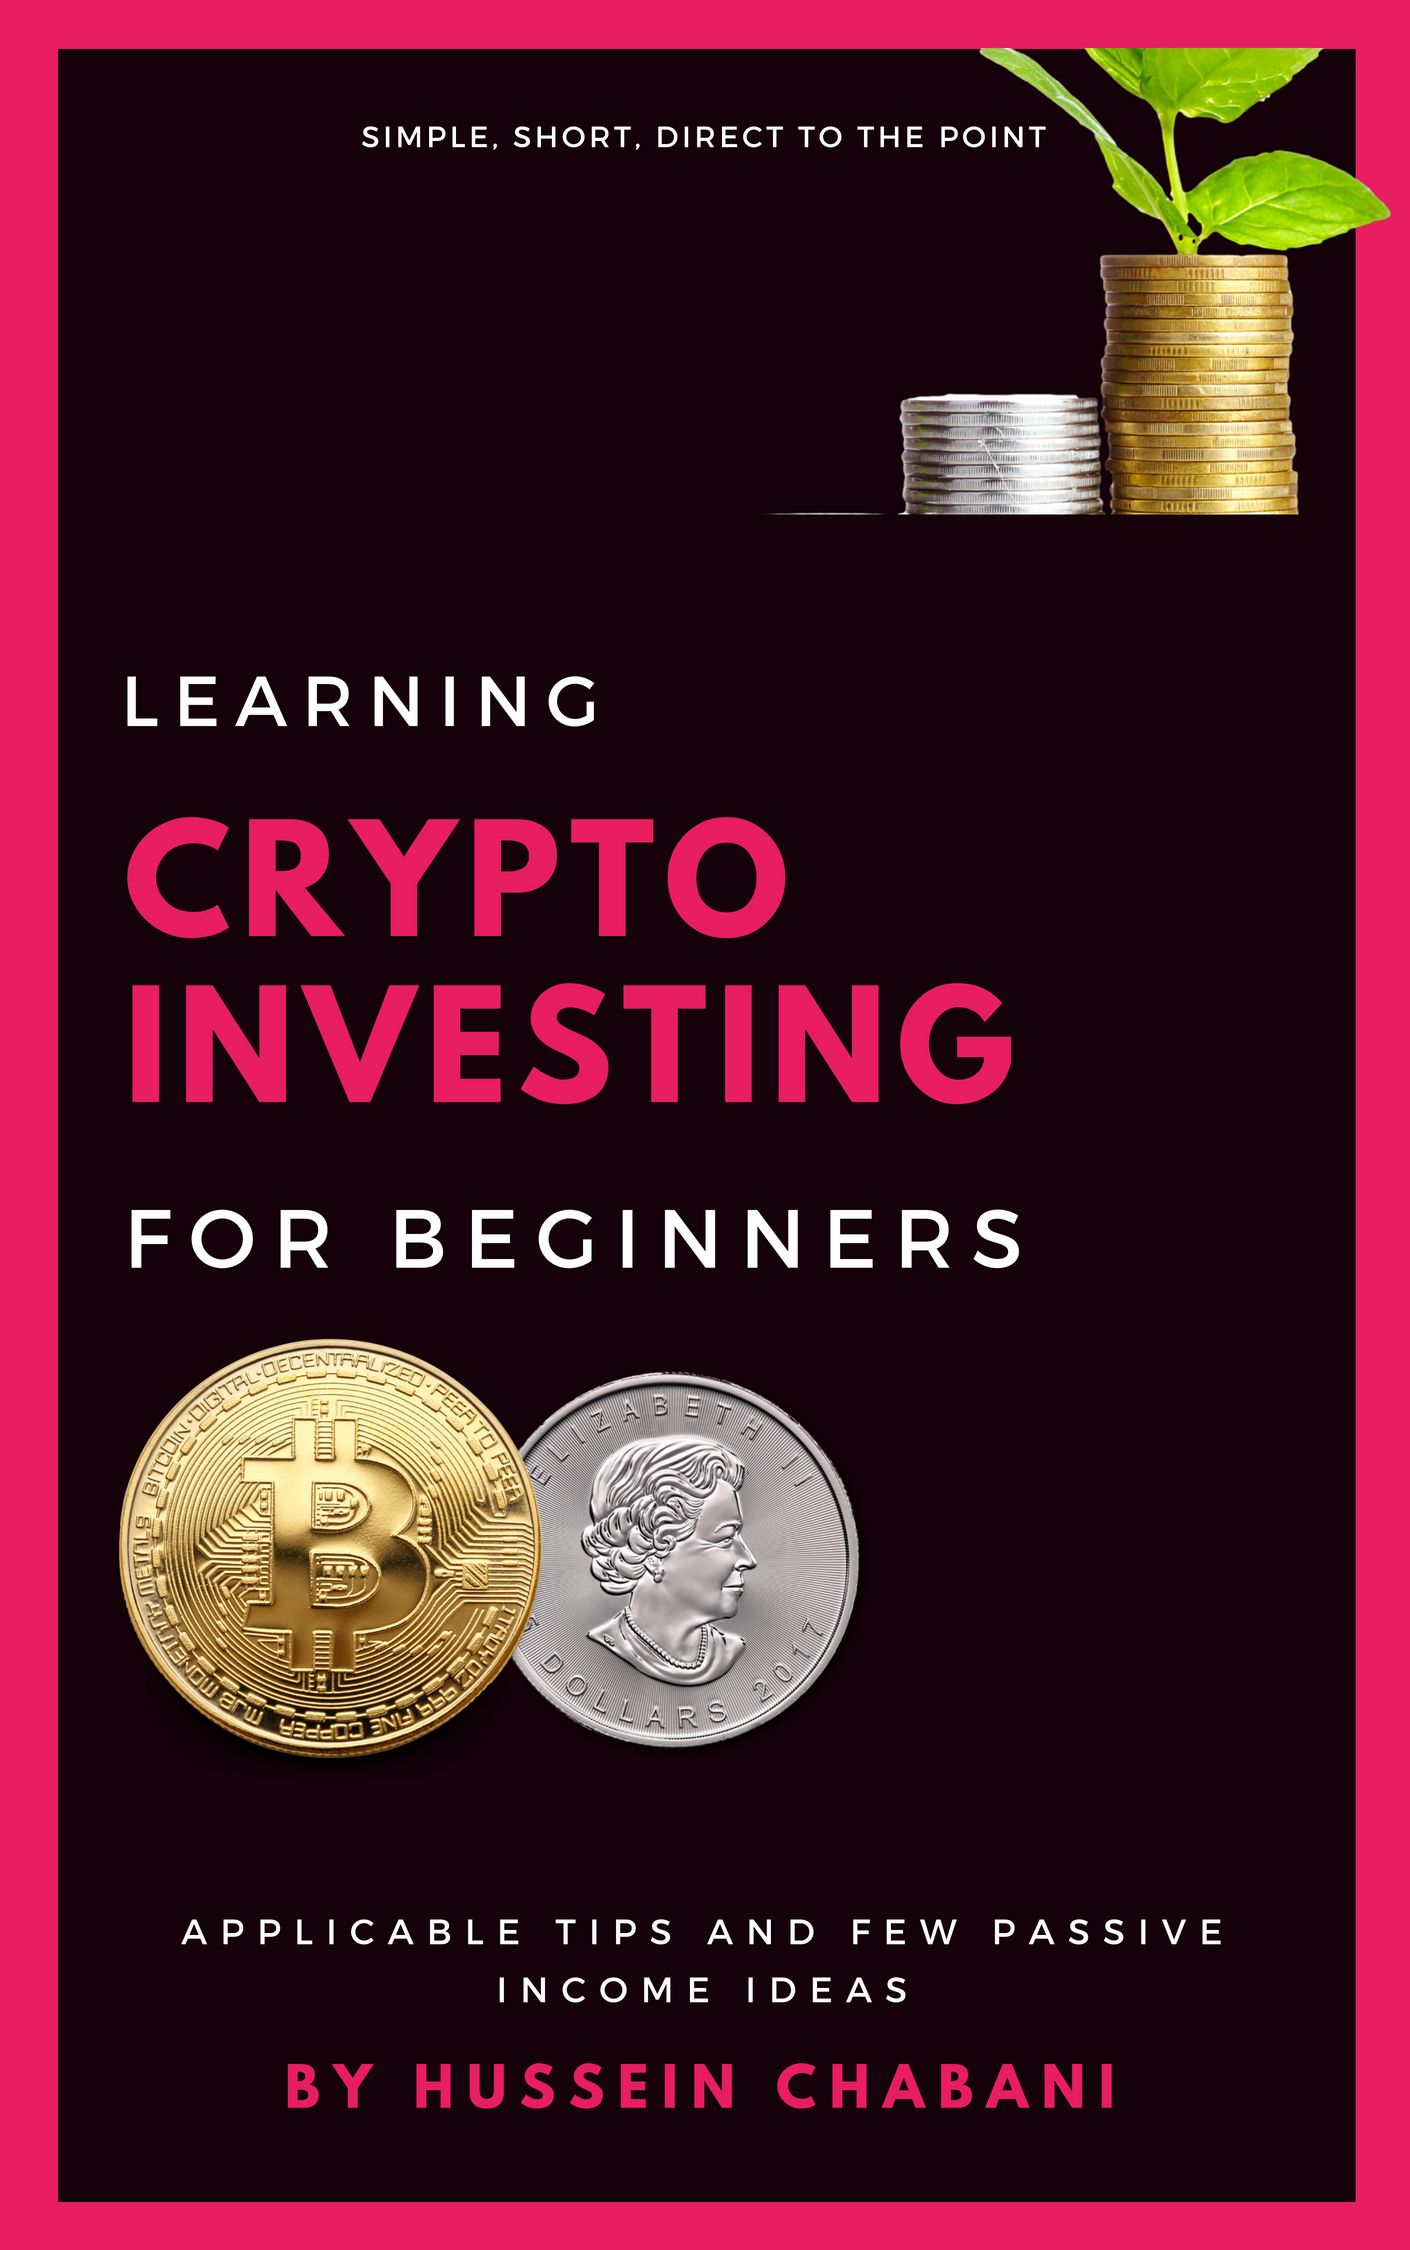 Hi, I wrote this book, its good if you are beginner and